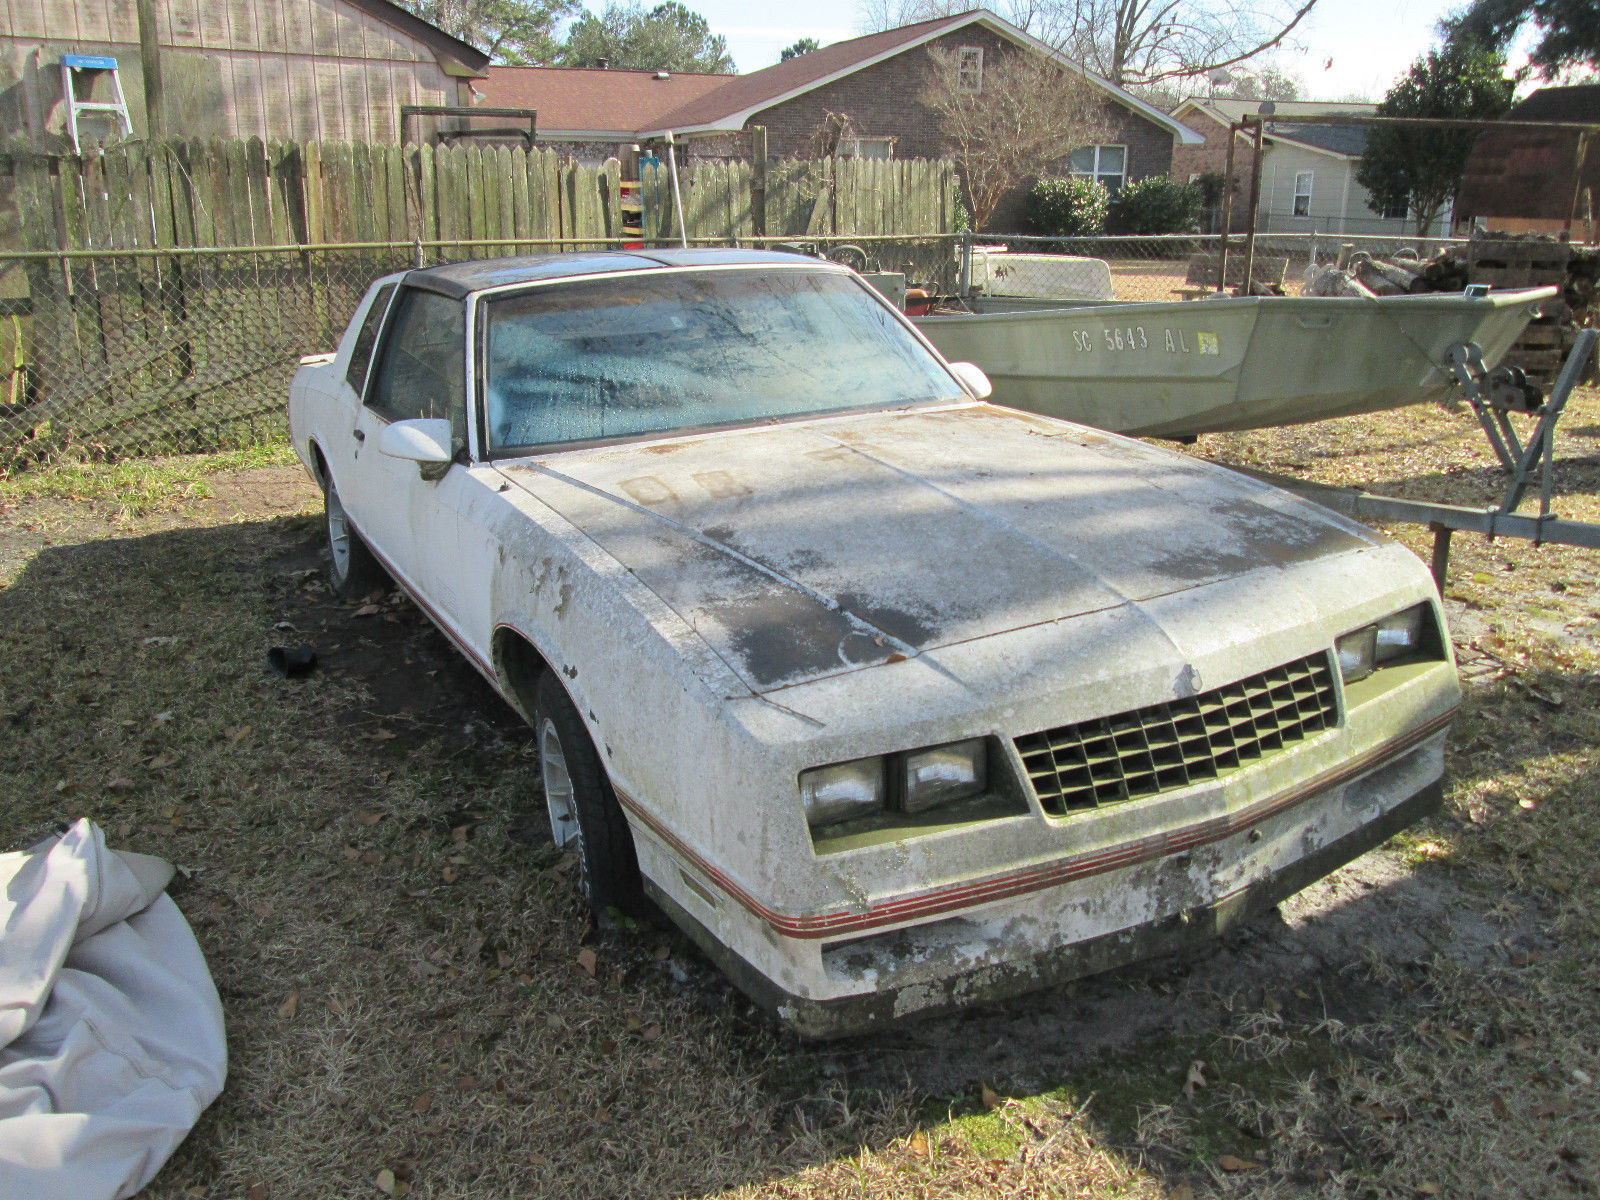 1987 Chevrolet Monte Carlo Ss Aerocoupe As Is For Parts Or To Restore Classic Chevrolet Monte